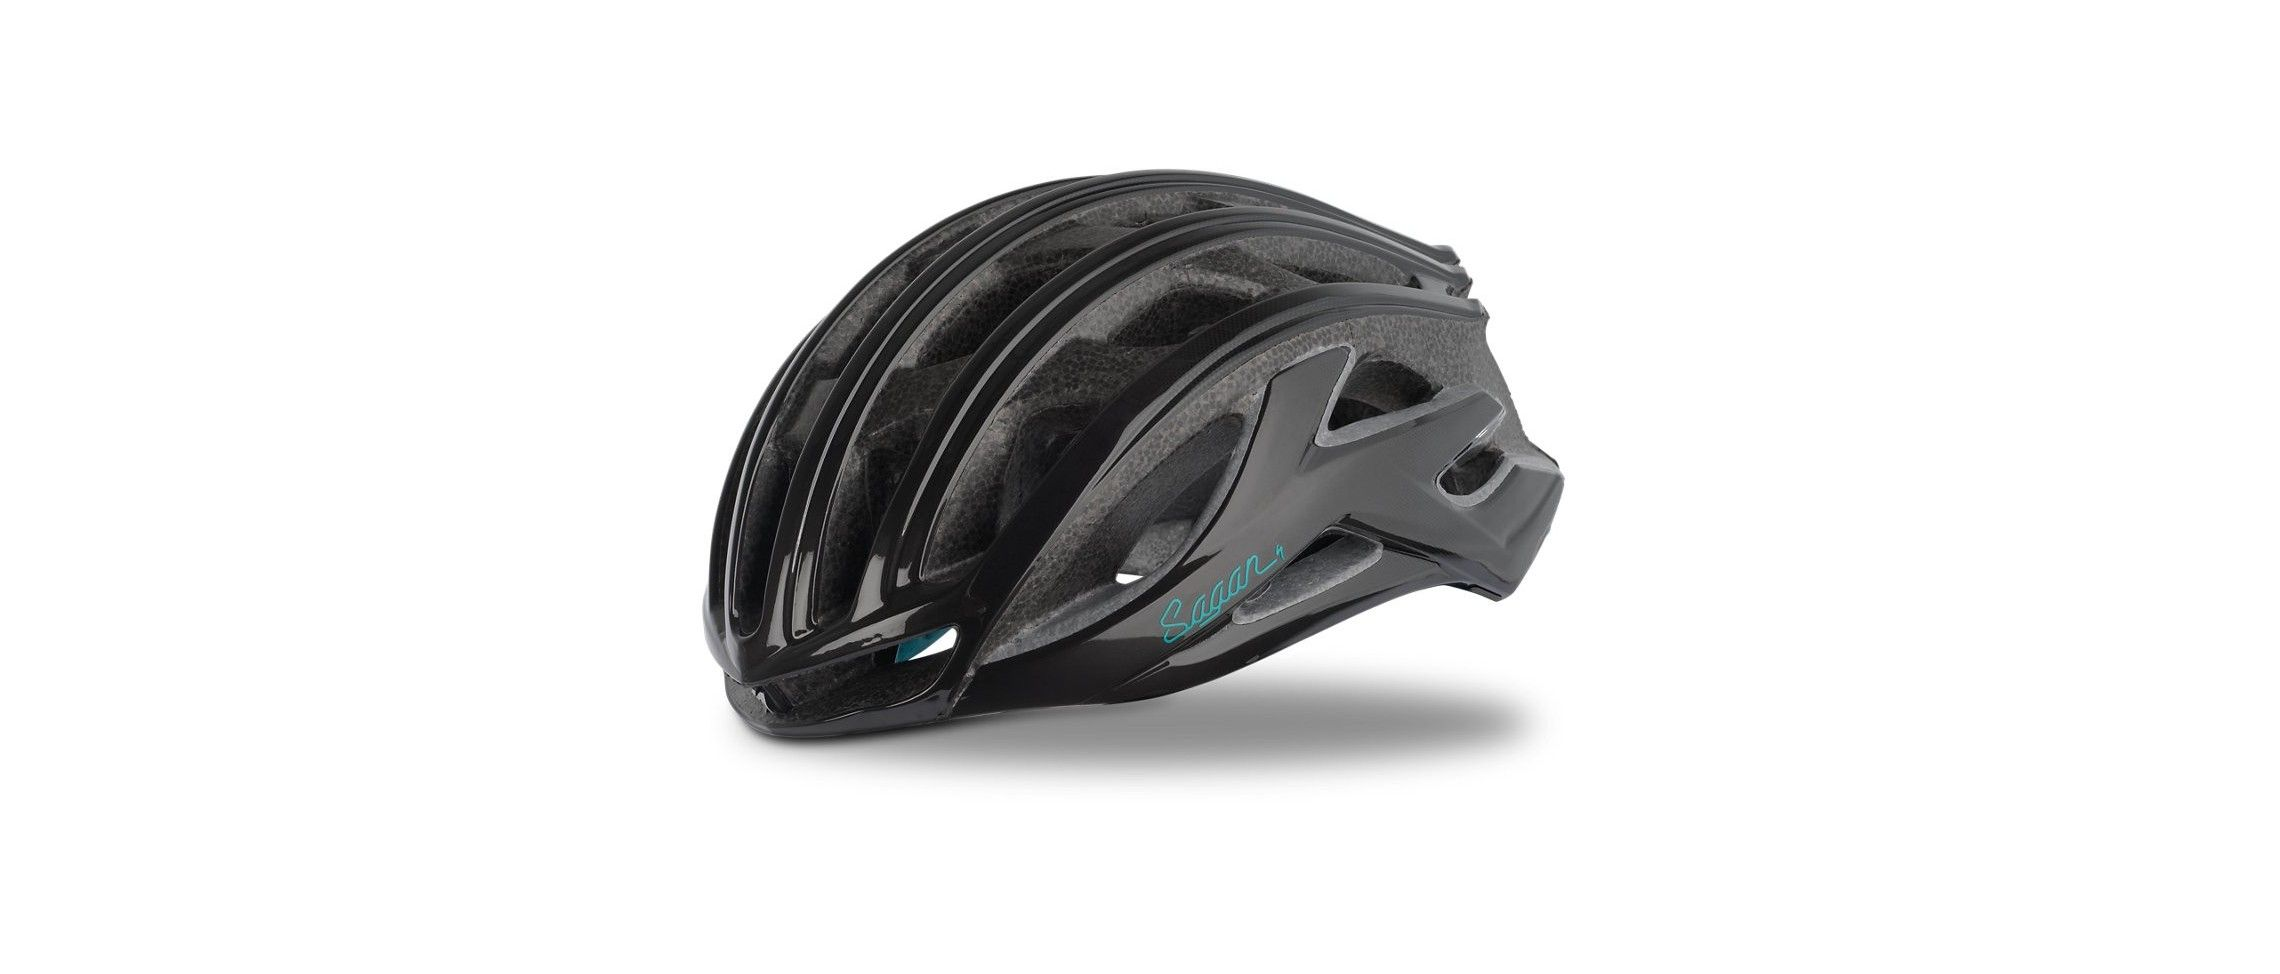 S-Works Prevail Sagan Collection LTD Casco Ciclismo Carretera Specialized Negro/Teal 1 IBKBike.es